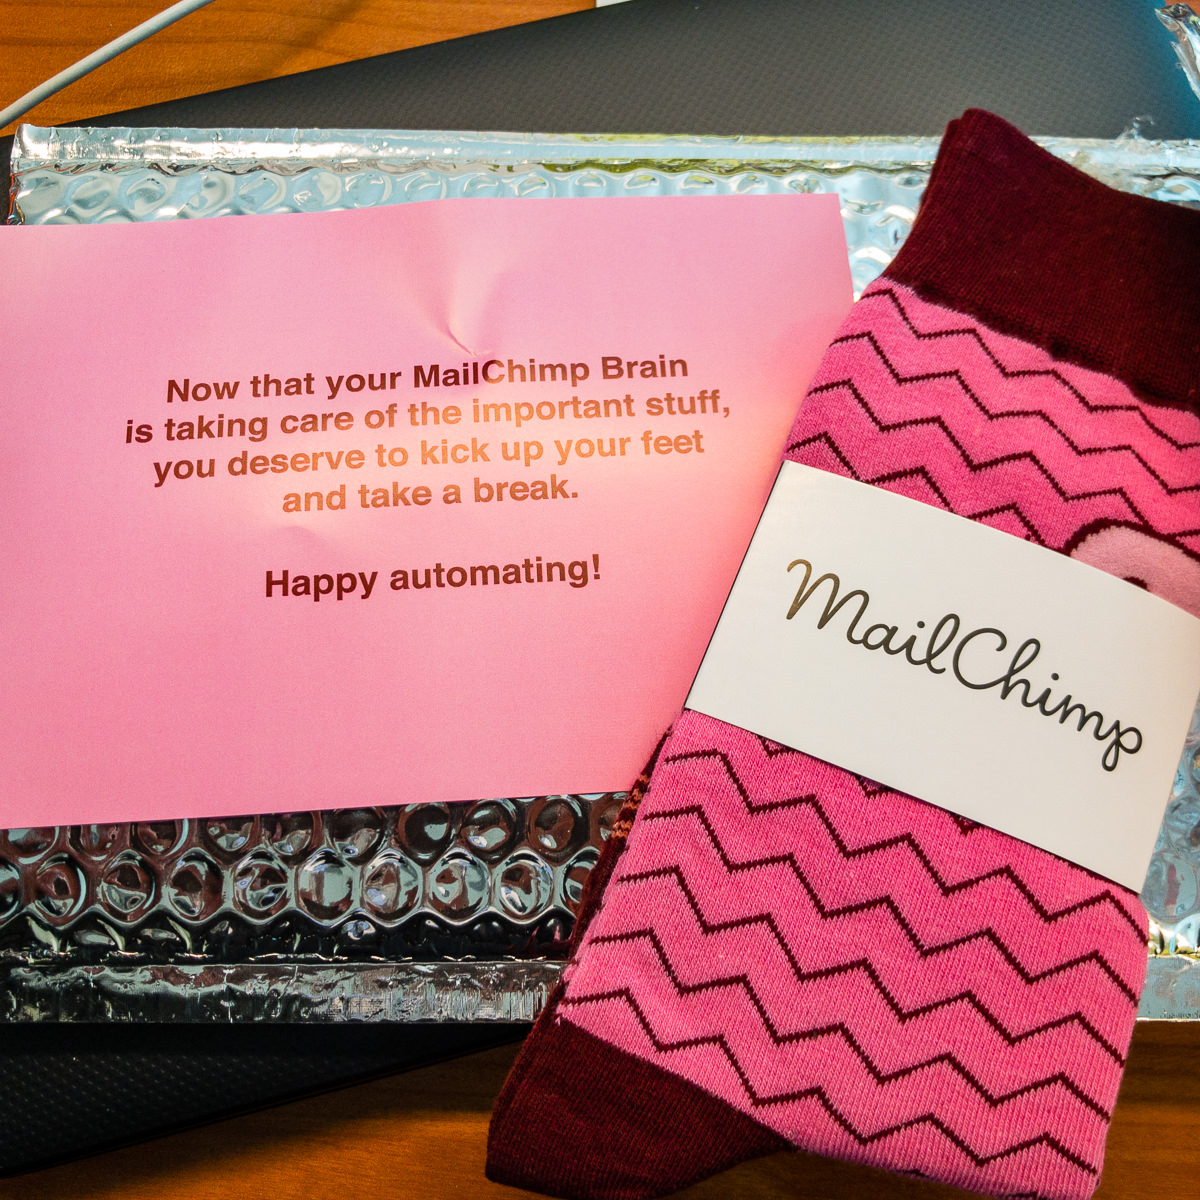 MailChimp socks Good news Bad news Gary Lum